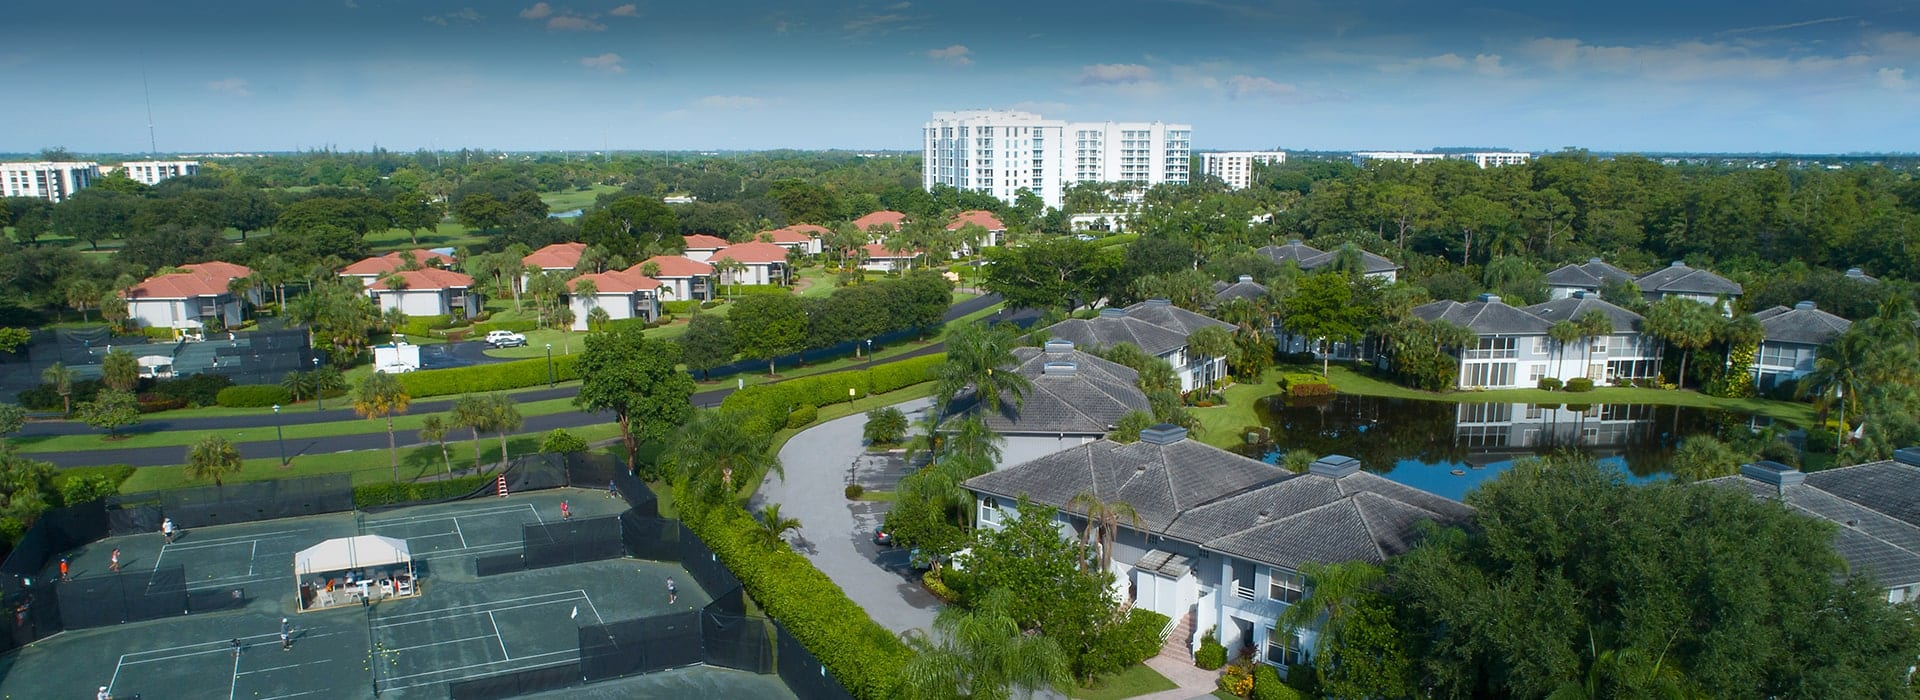 The Cove townhomes adjacent to the tennis courts and clubhouse